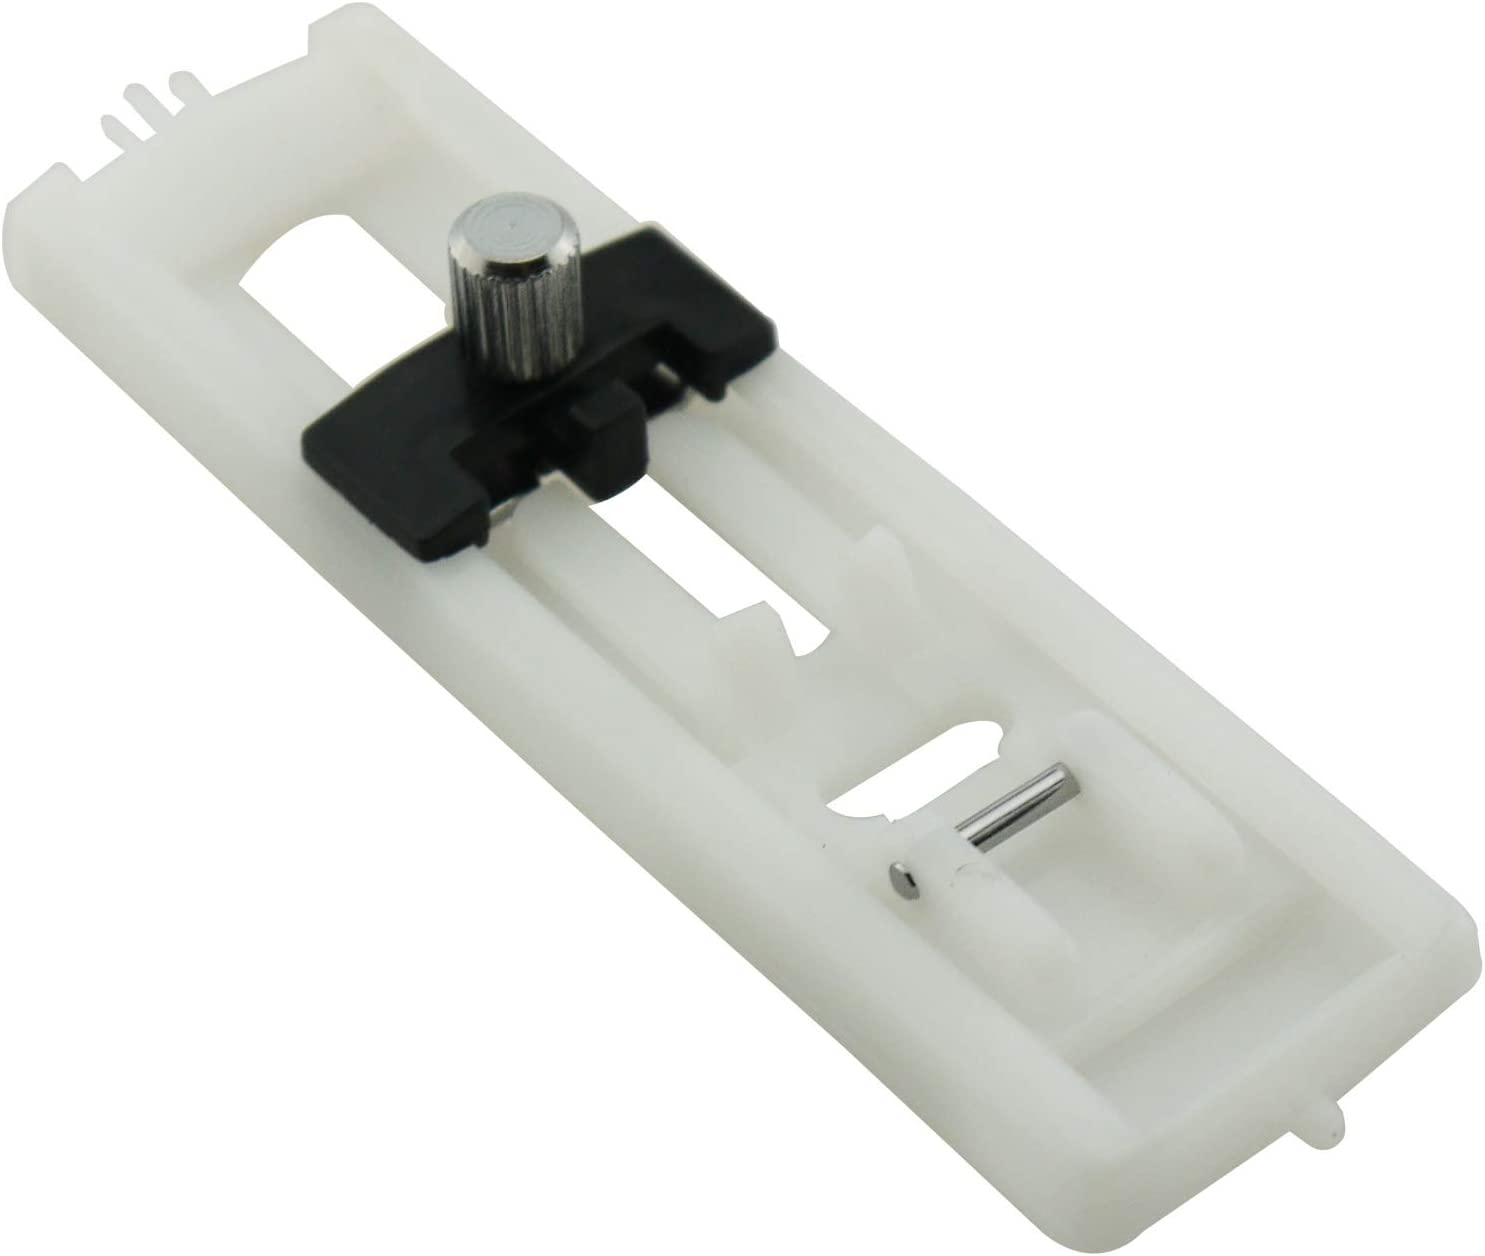 Janome Sewing Machine BUTTONHOLE FOOT Fits New Singer Toyota /& others Brother